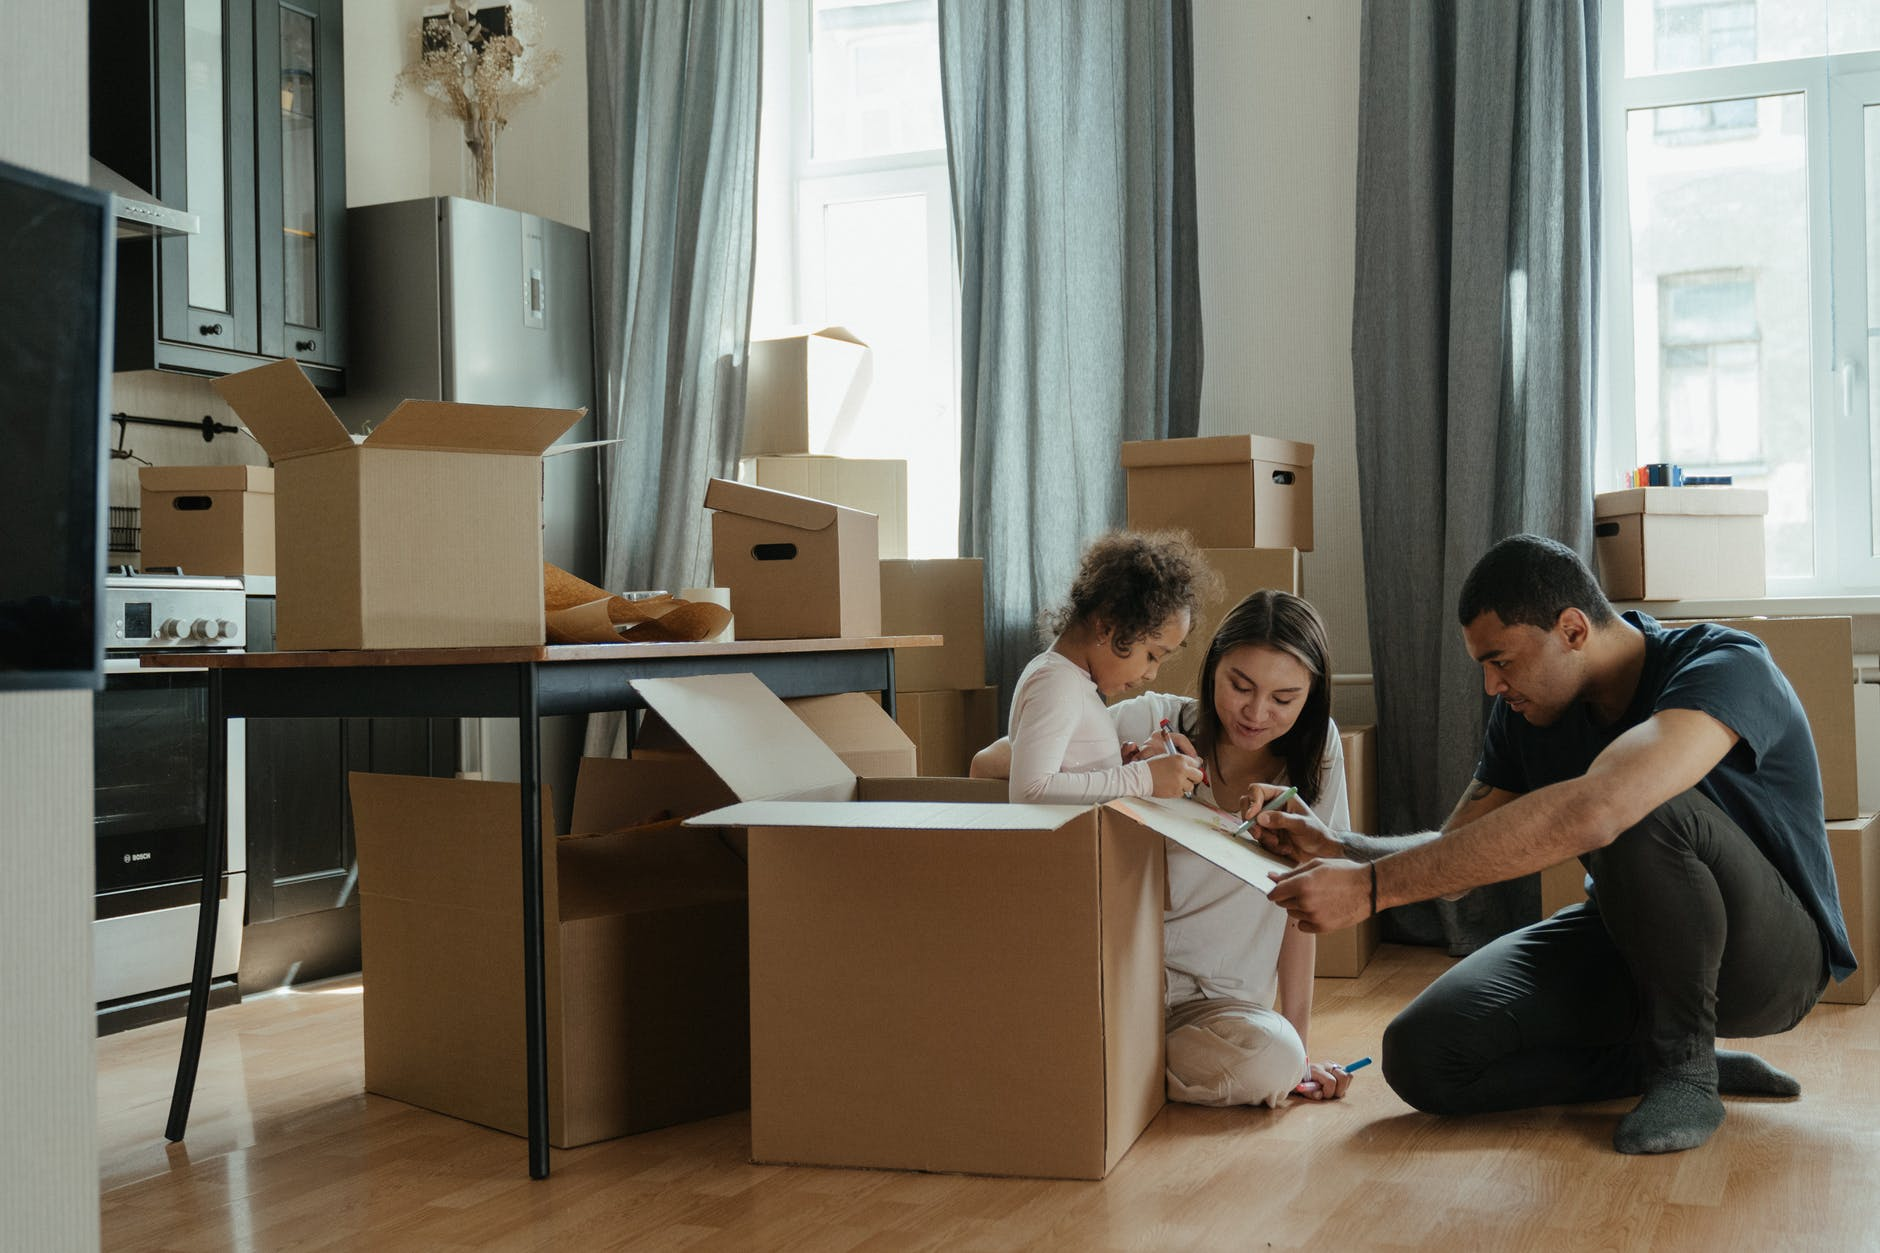 Top Reasons Why You Should Use Self Storage When Relocating For A Job